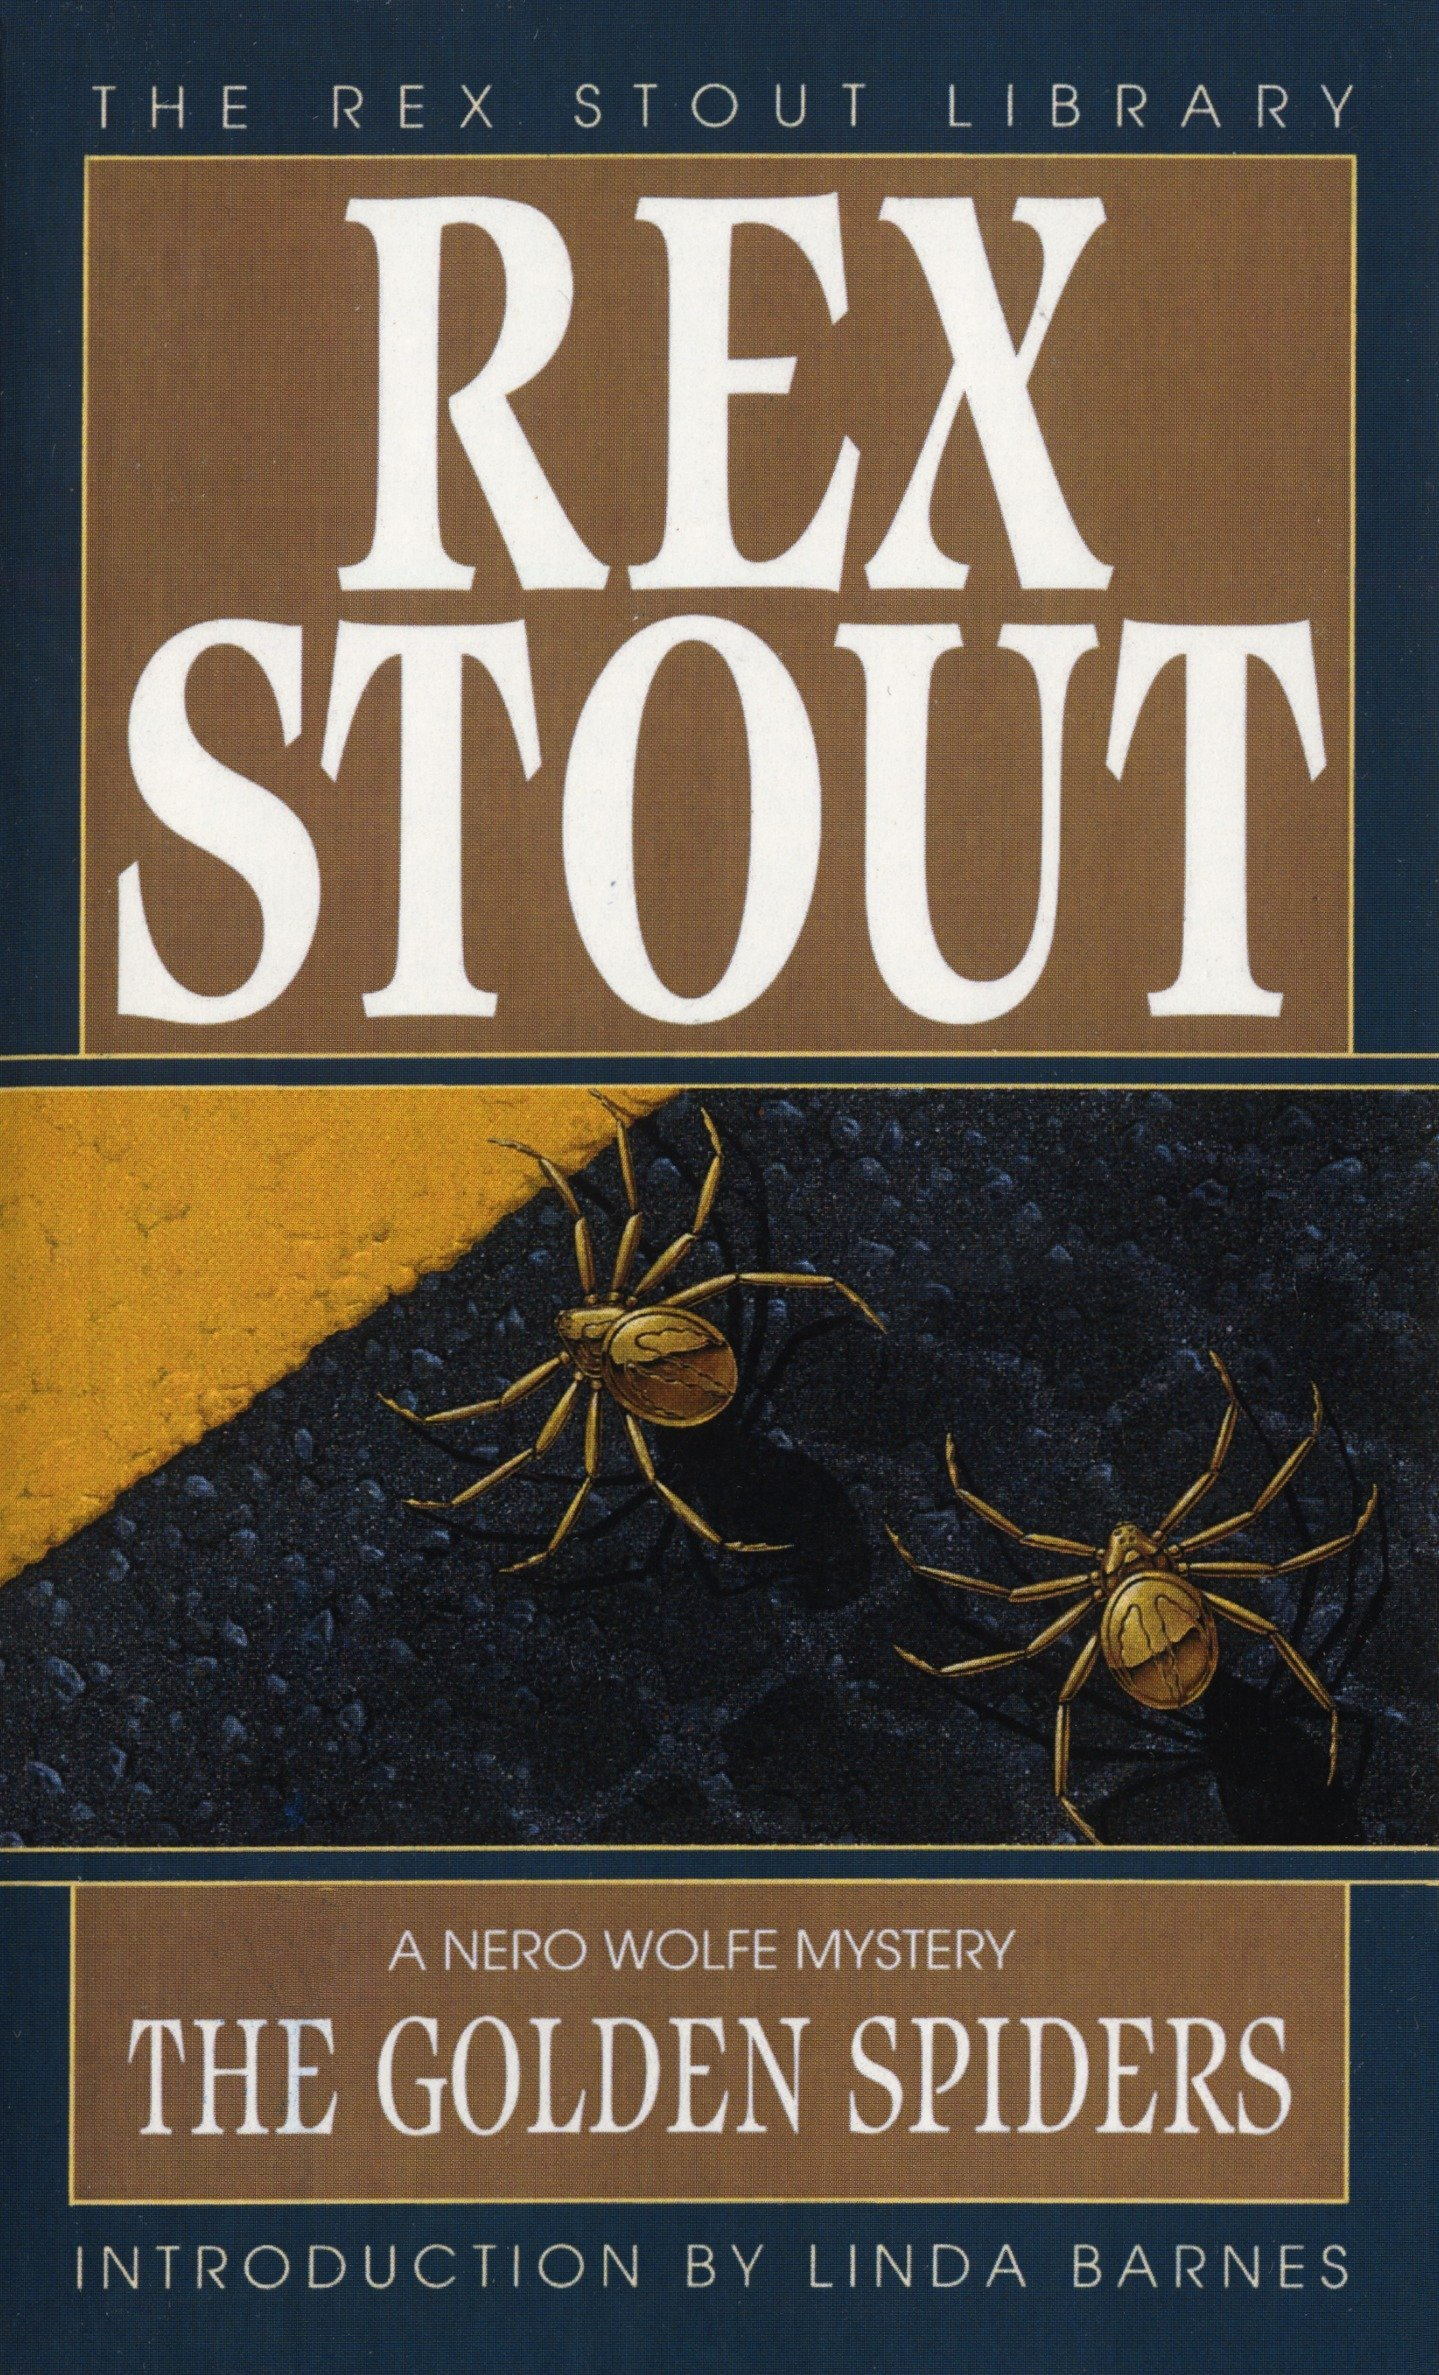 The Golden Spiders (Nero Wolfe): Rex Stout: 9780553277807: Amazon.com: Books